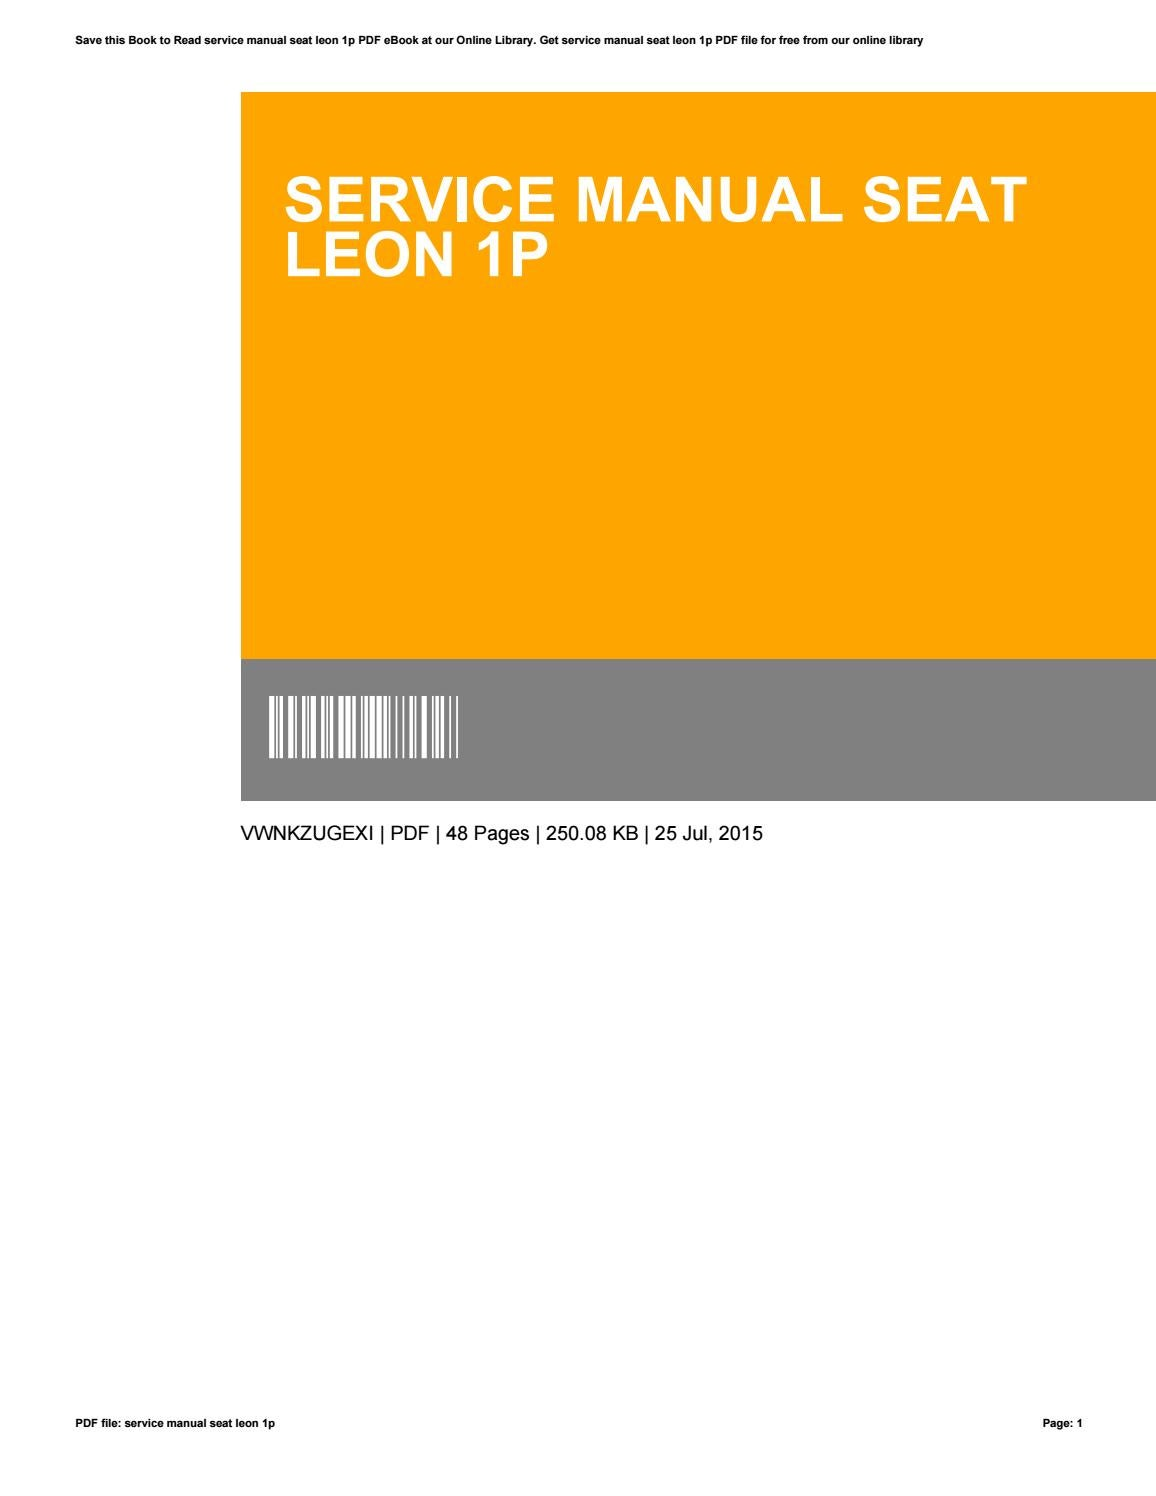 Seat leon service manual download.